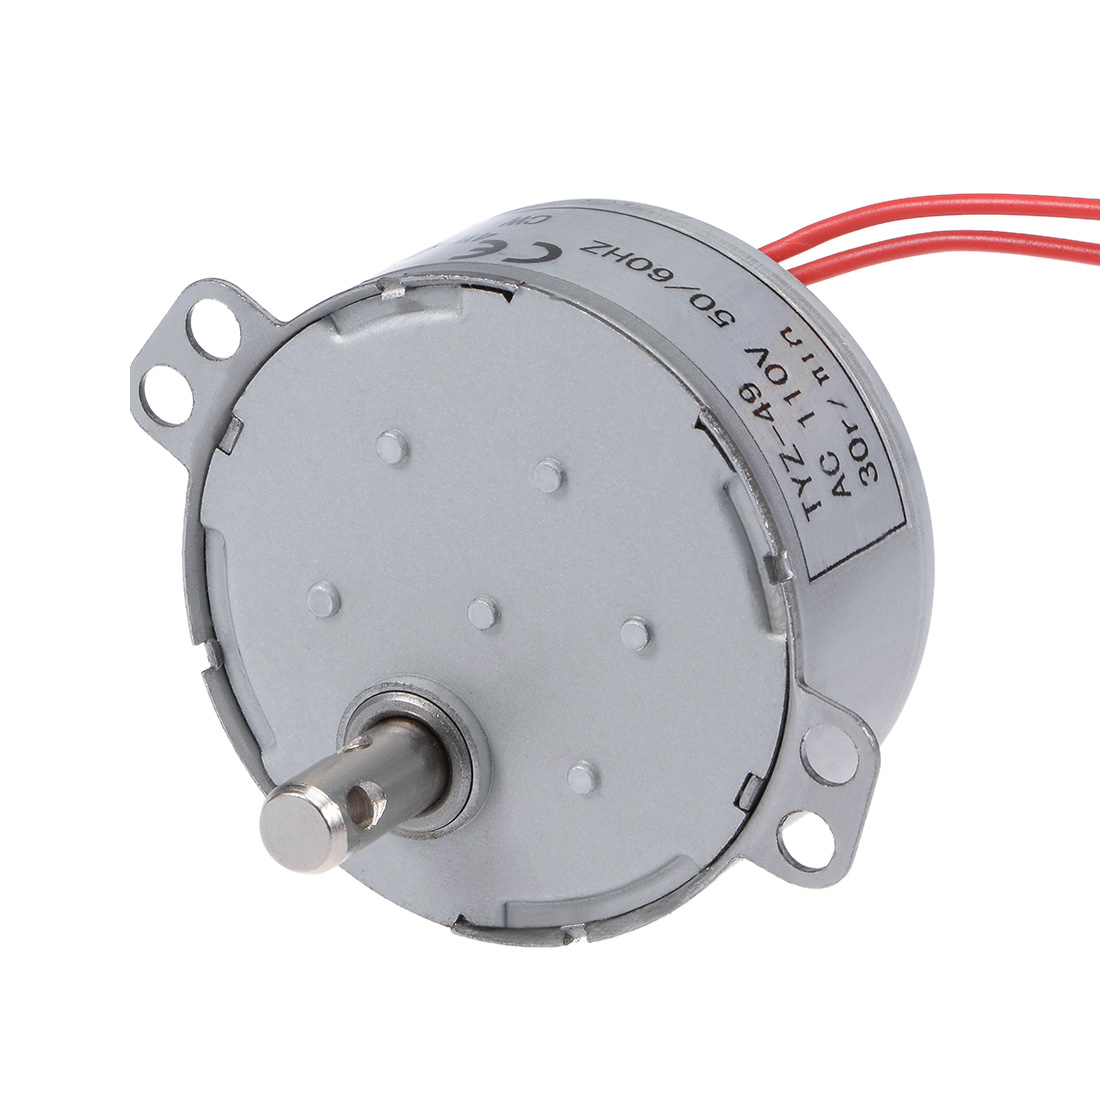 110V 50/60Hz 35RPM CW AC Synchronous Motor Turntable Gear Box for Microwave Oven